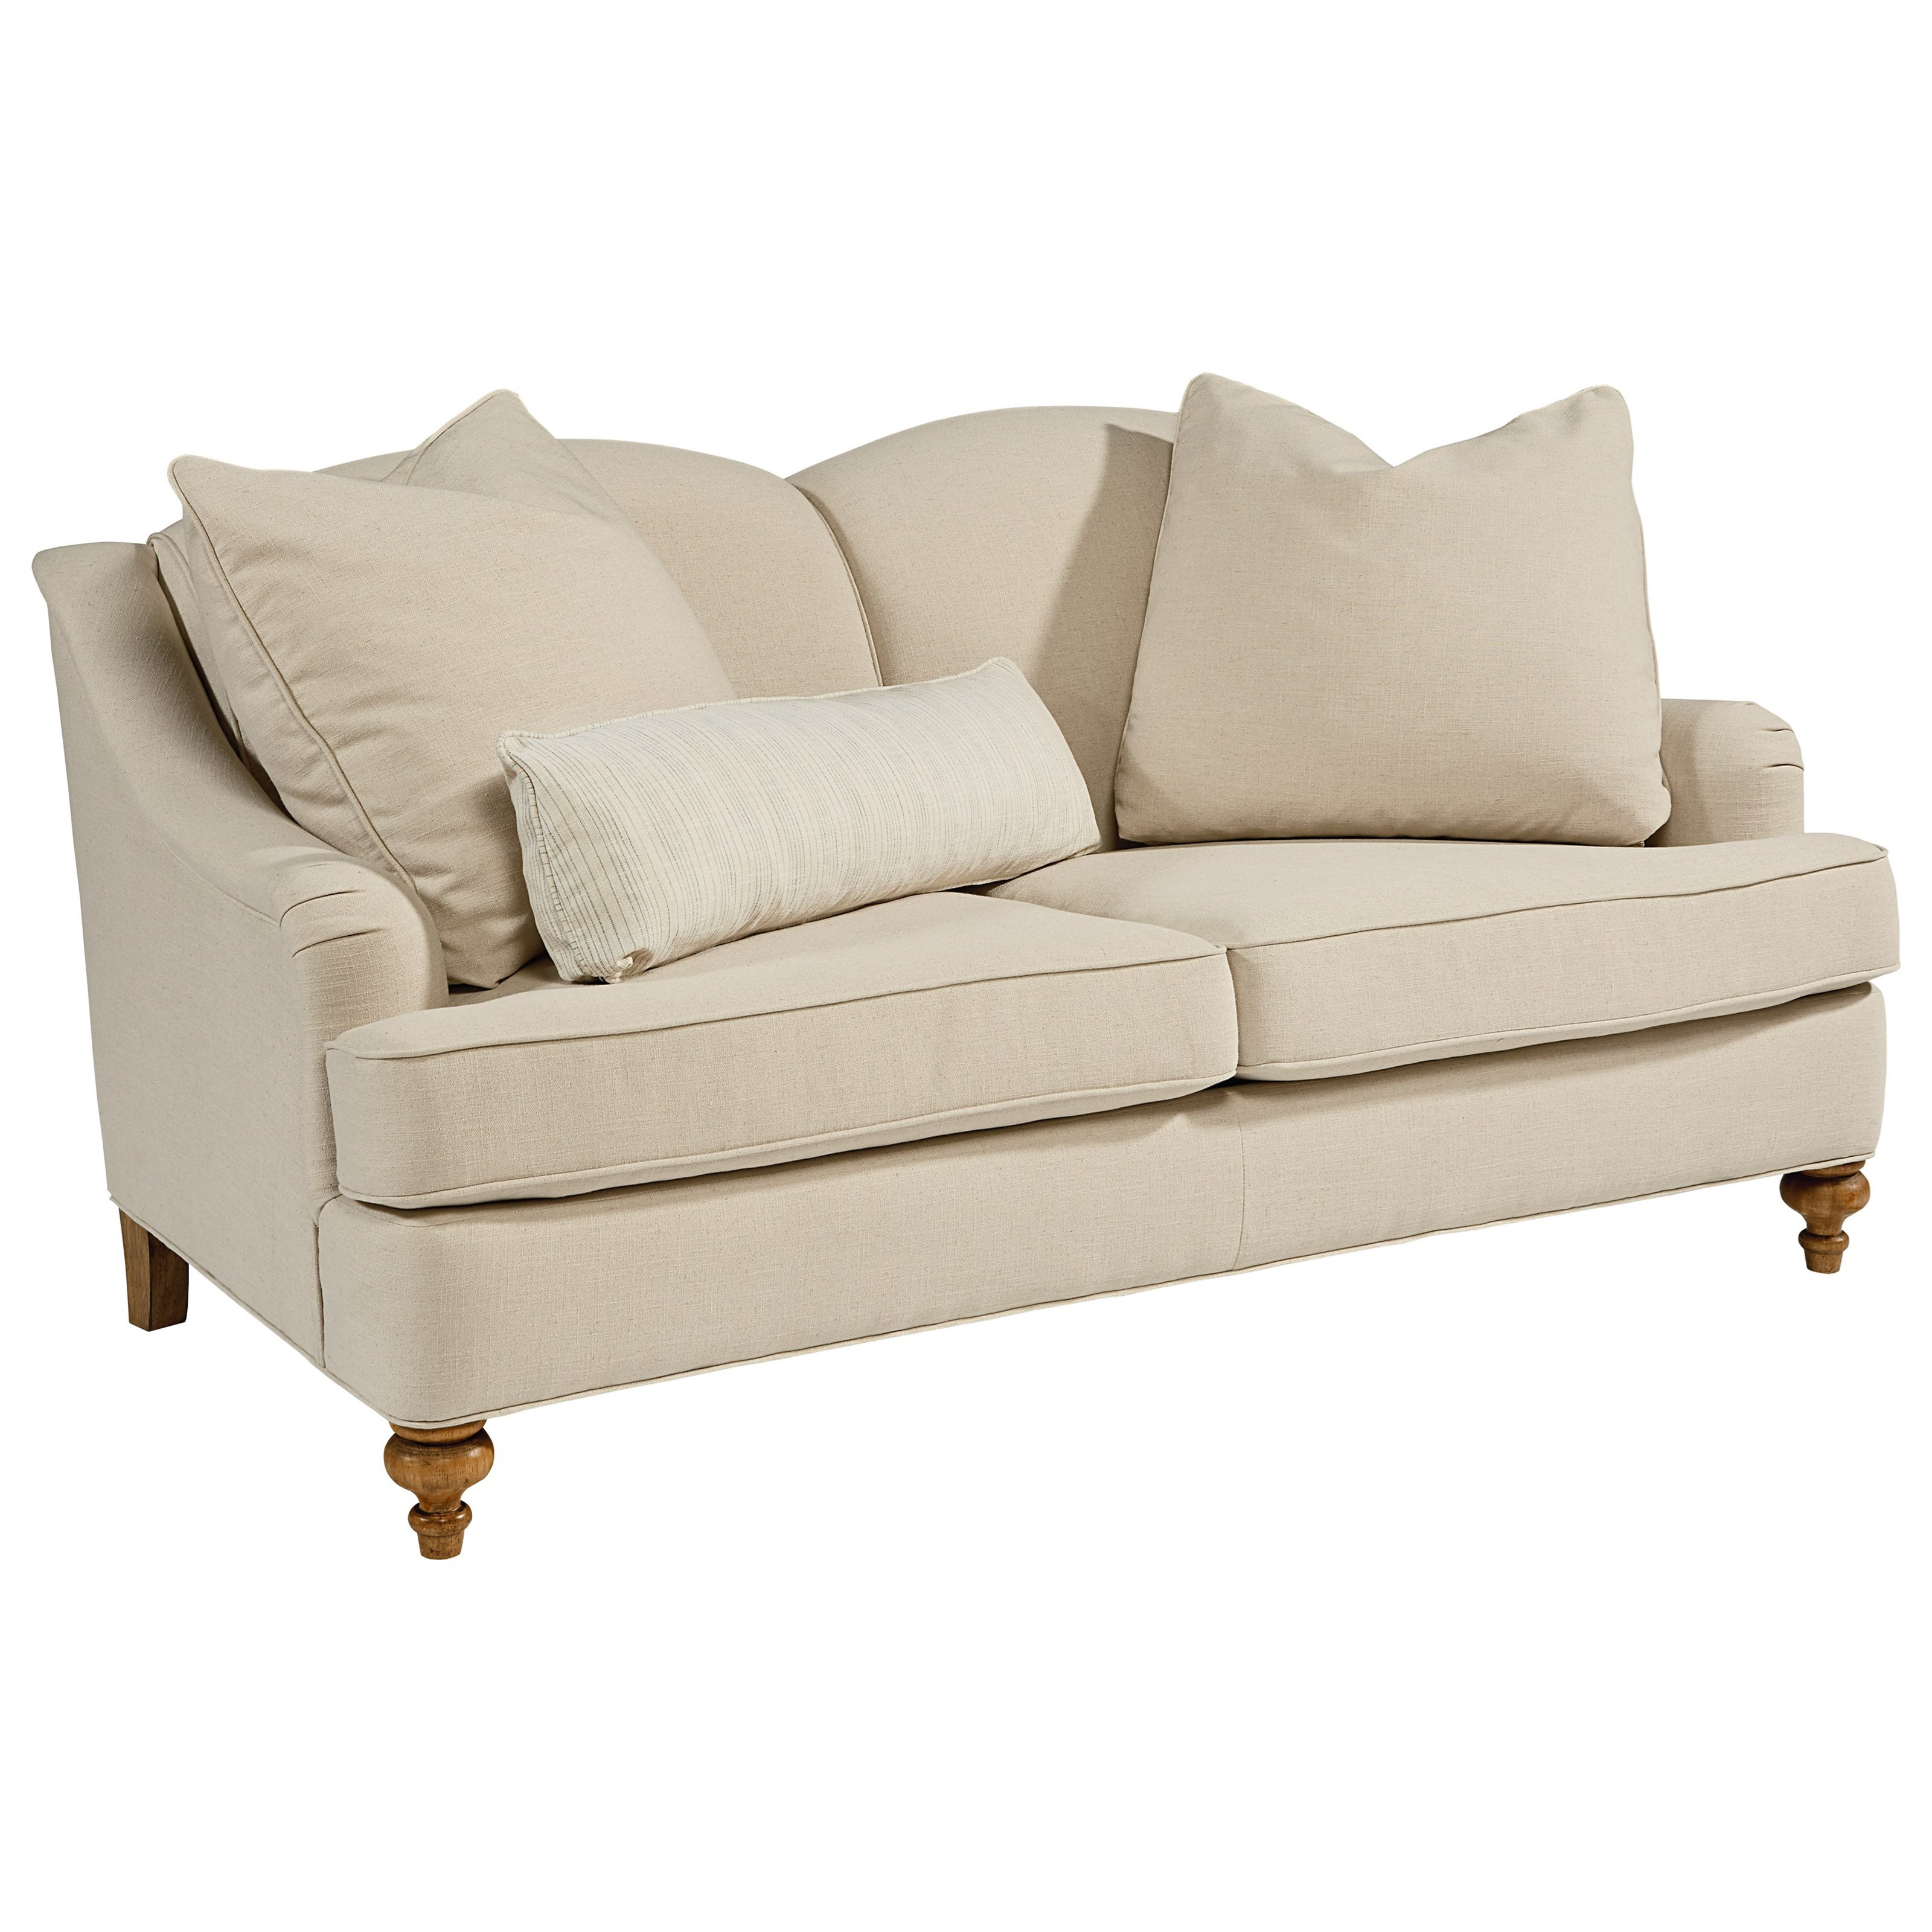 Magnolia Home by Joanna Gaines Adore Loveseat - Item Number: 55502201